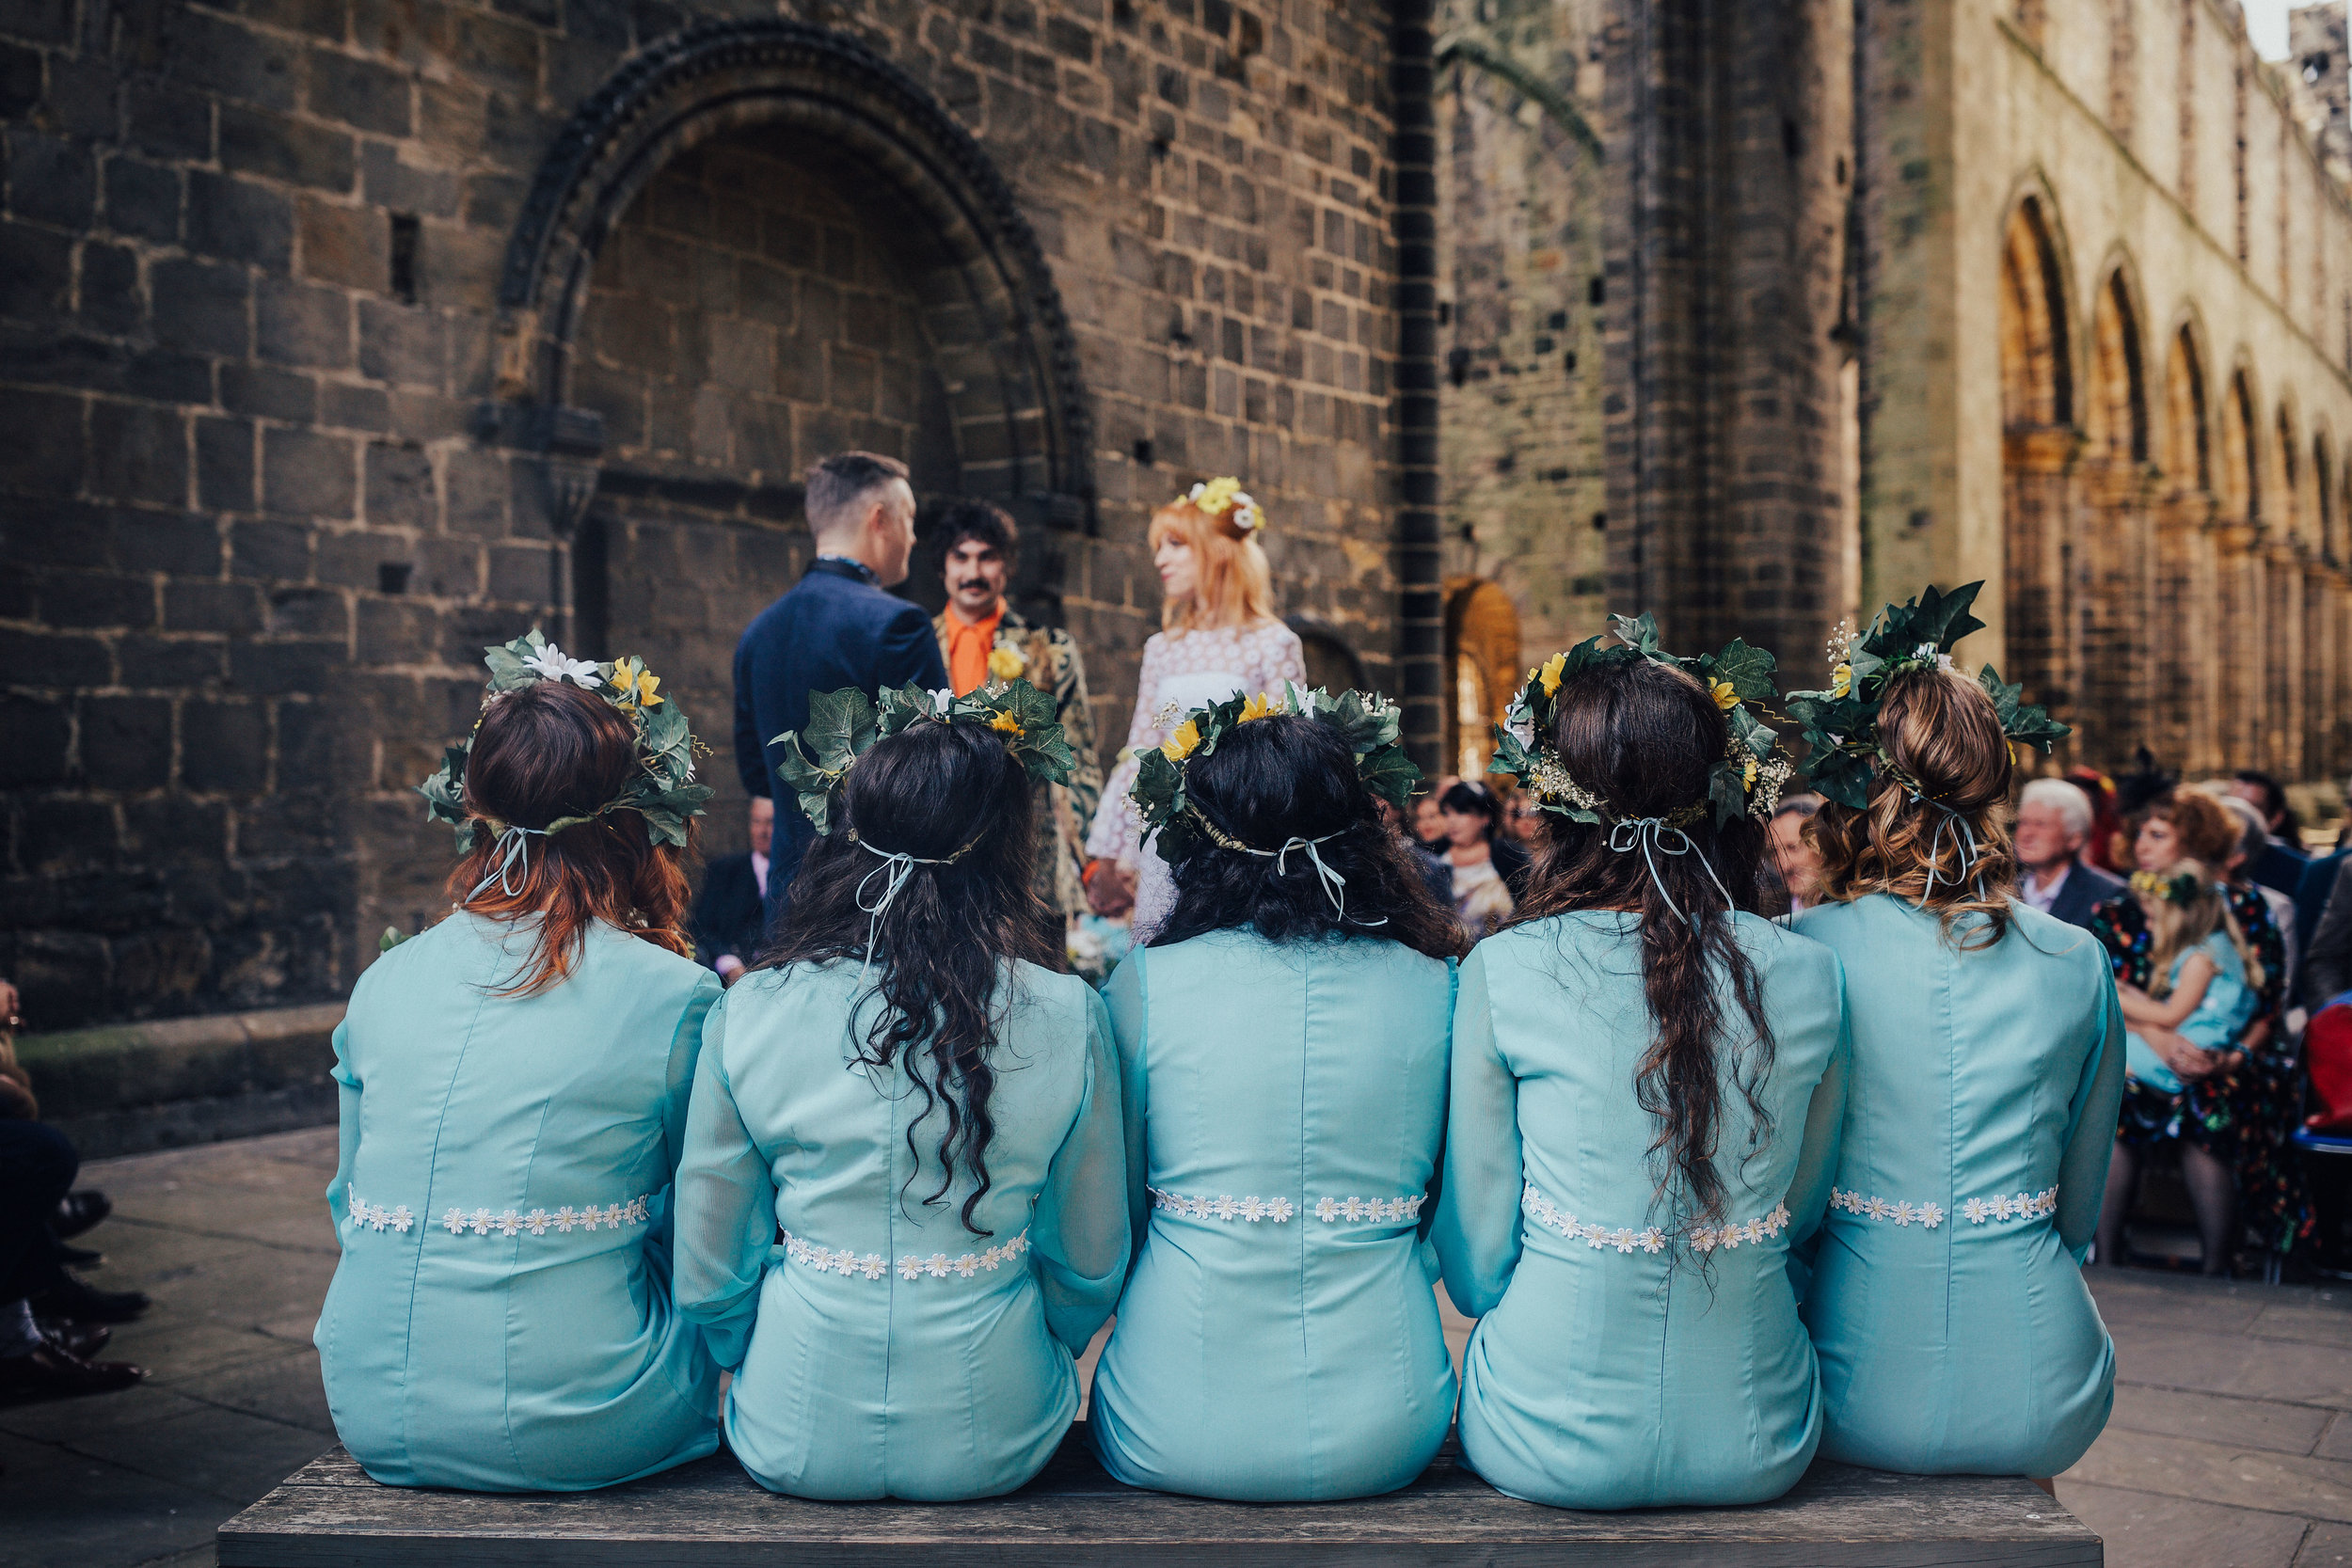 ALTERNATIVE_WEDDING_PHOTOGRAPHY_LEEDS_UK_PJ_PHILLIPS_PHOTOGRAPHY_70.jpg